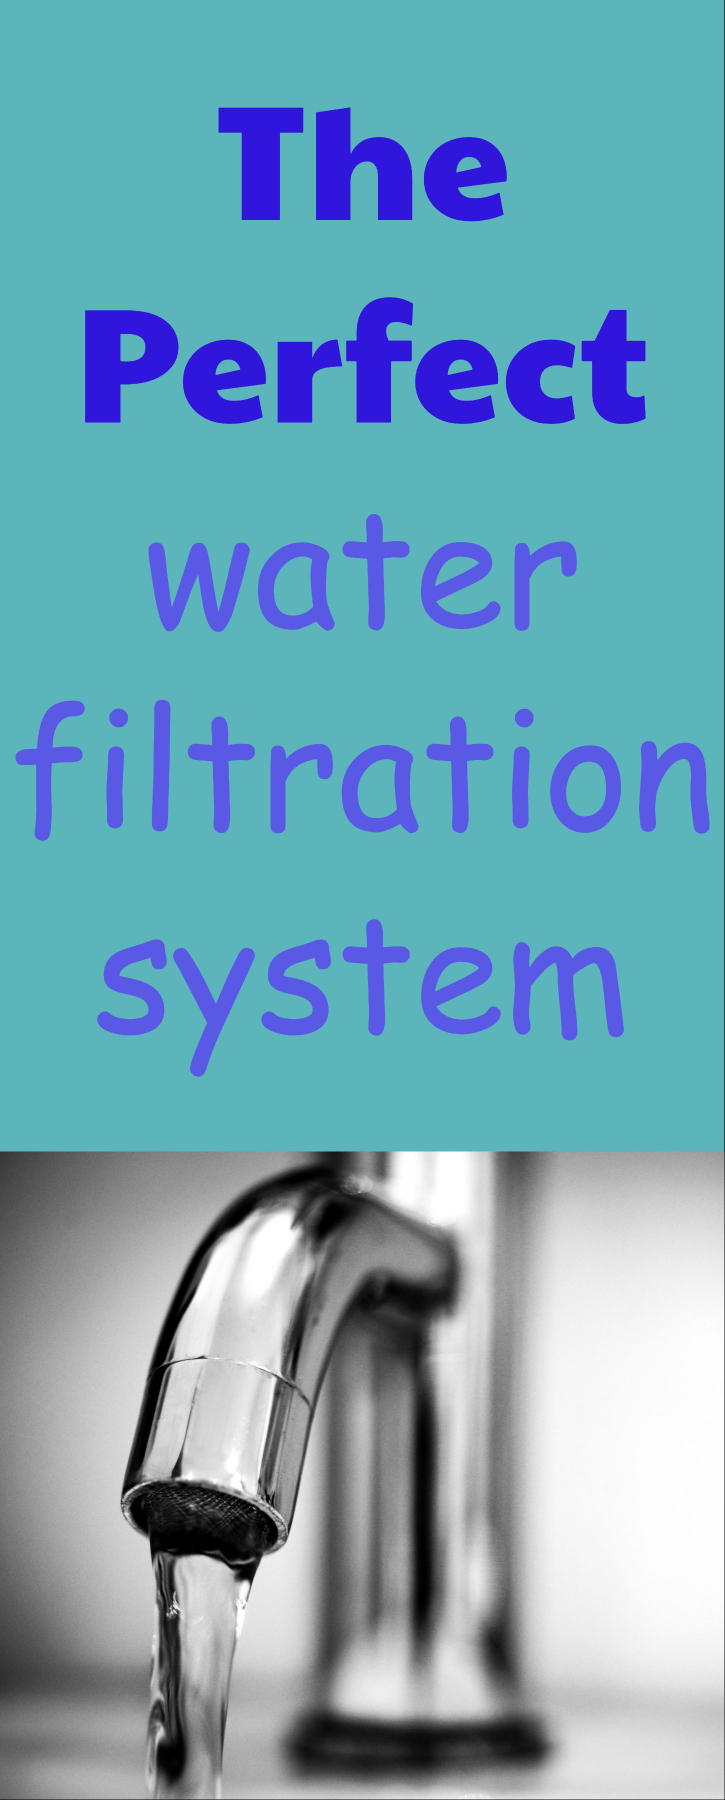 the perfect water filtration system based on your zip code (environmental working group water/ water filter/ brita filter/ reverse osmosis filtration/ water distillation/ contaminated water/ water purification/ safe drinking water/ water pitcher filtration)